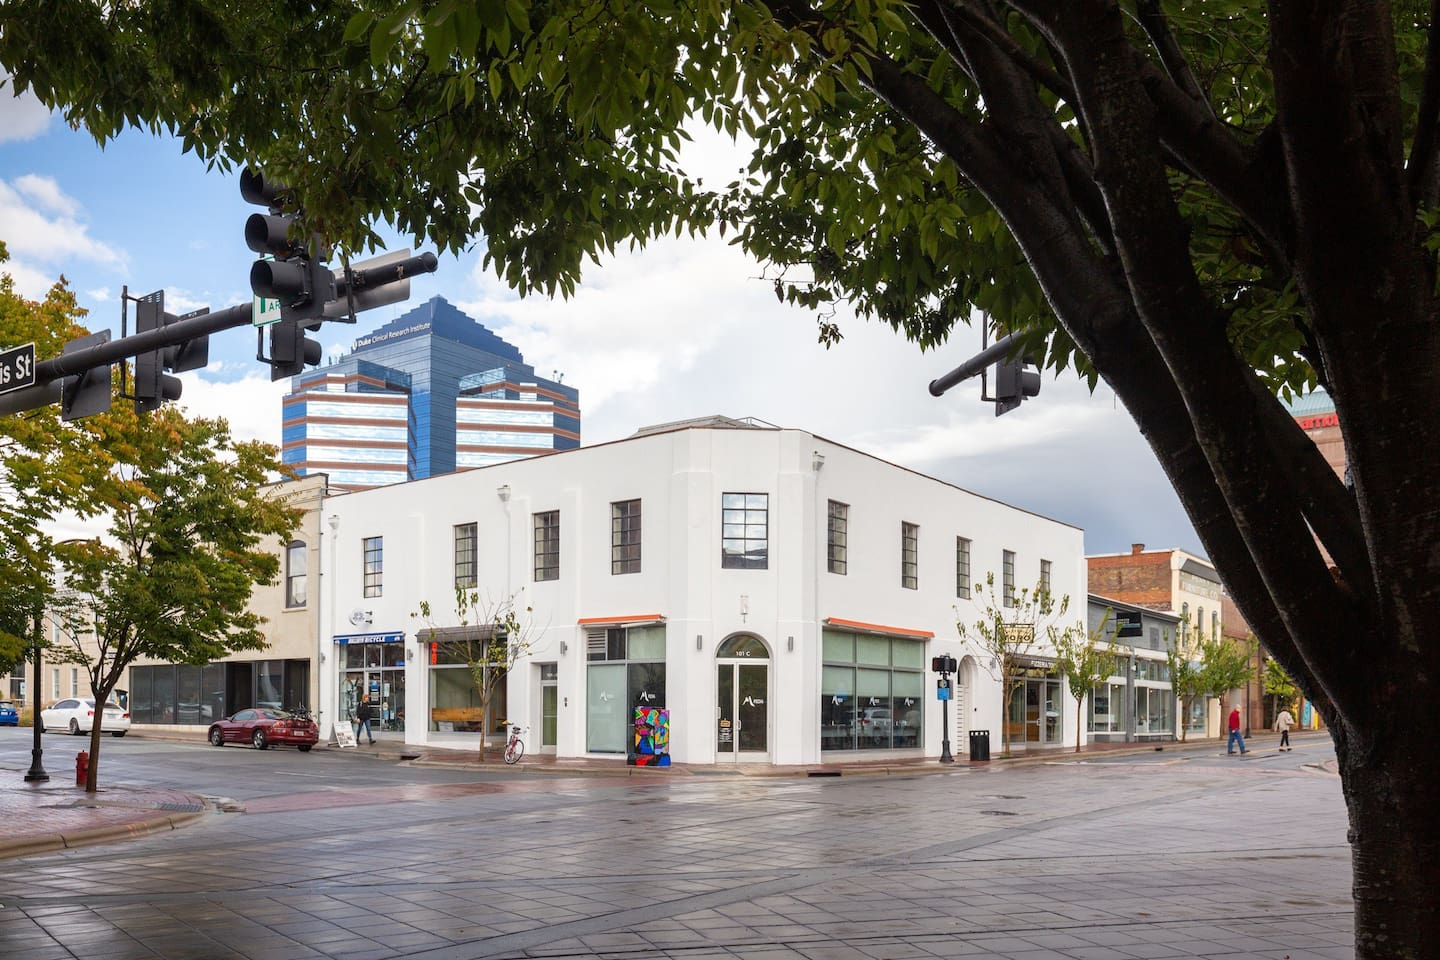 Our private condo is located right in the heart of downtown on the second floor of this building :) come experience all that Durham has to offer and have incredible restaurants, bars and coffee shops just steps away. We can't wait to host you!